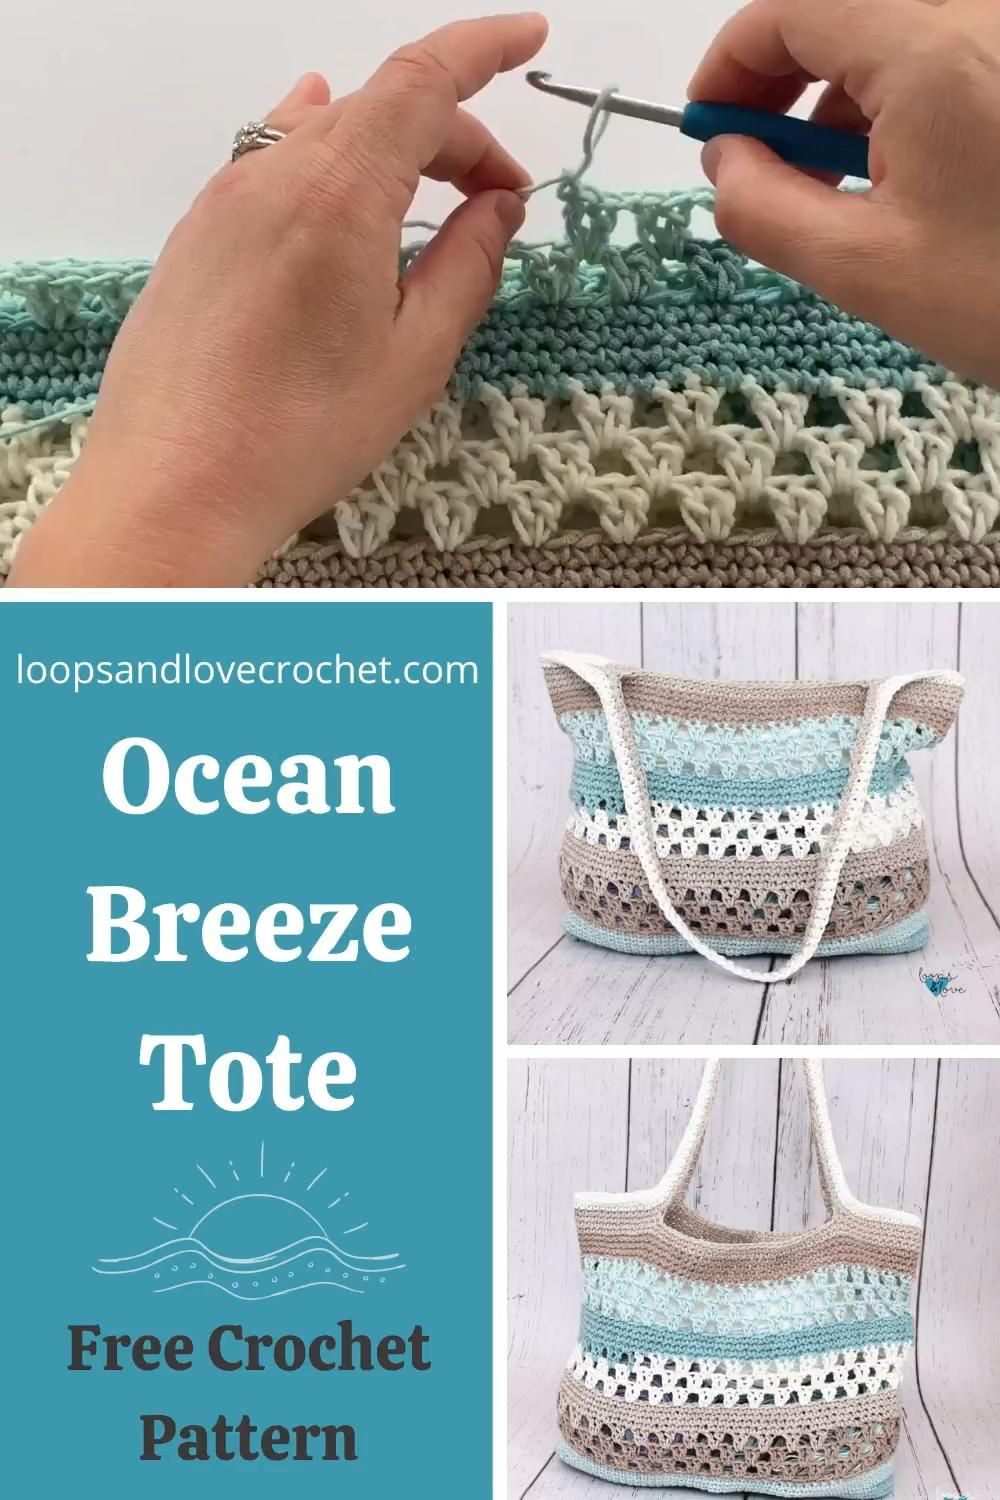 The Ocean Breeze Tote is a nice and roomy crochet tote bag that has lots of fun texture. This bag is a great size to hold everything for the adventures in your life, from day trips to summer markets, or shopping to lake, pool, or beach days! I hope you love making the Ocean Breeze Tote! Free crochet pattern by Loops and Love Crochet.